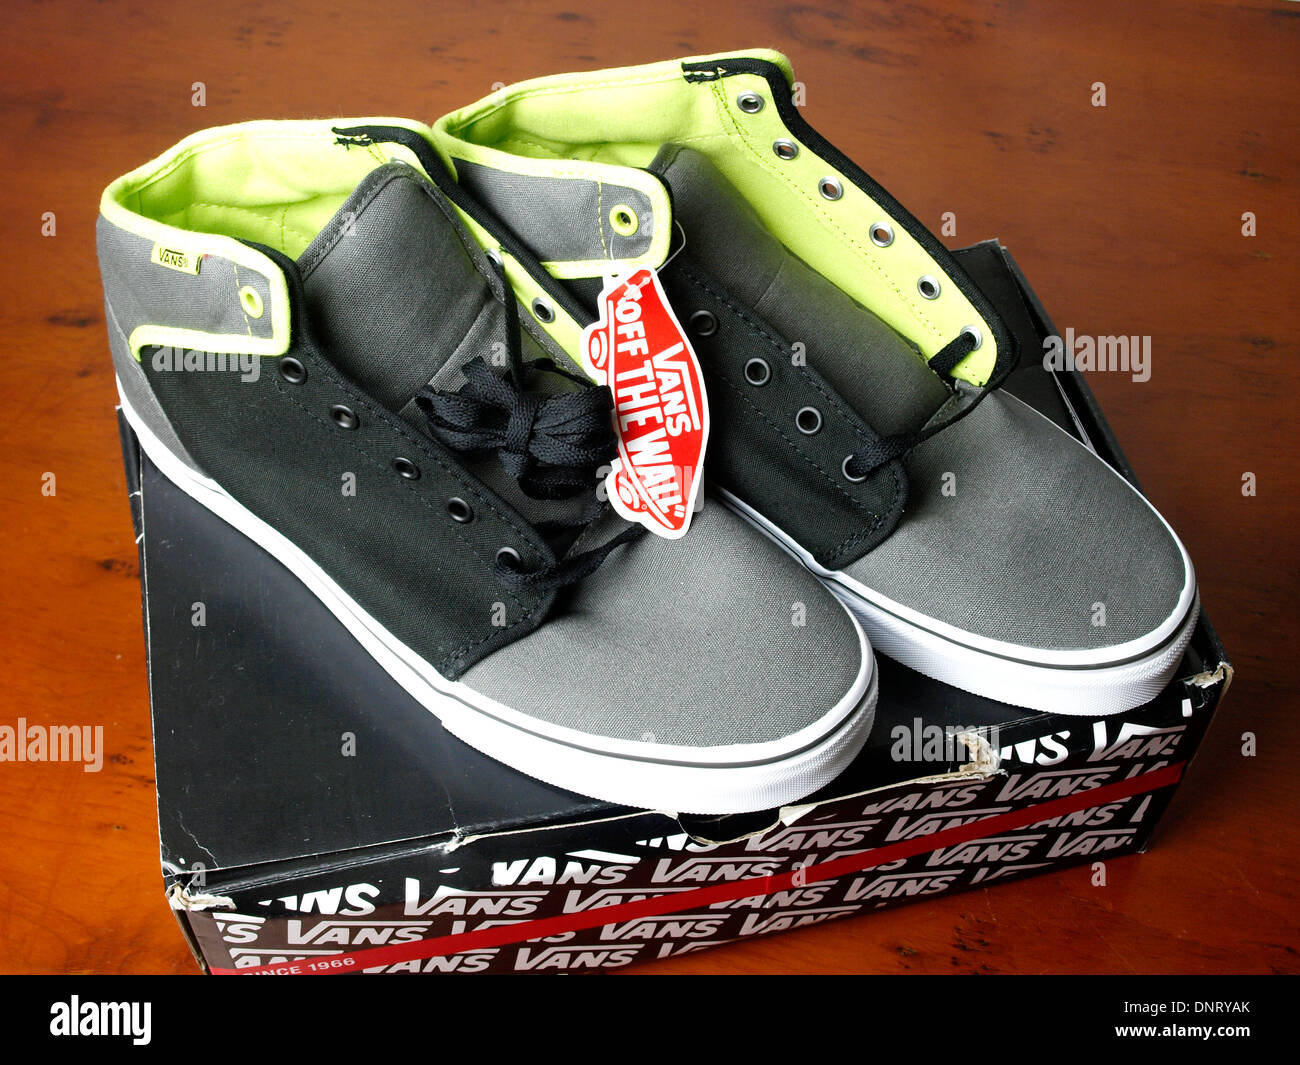 e29d6fed1d Vans Shoes Stock Photos   Vans Shoes Stock Images - Alamy